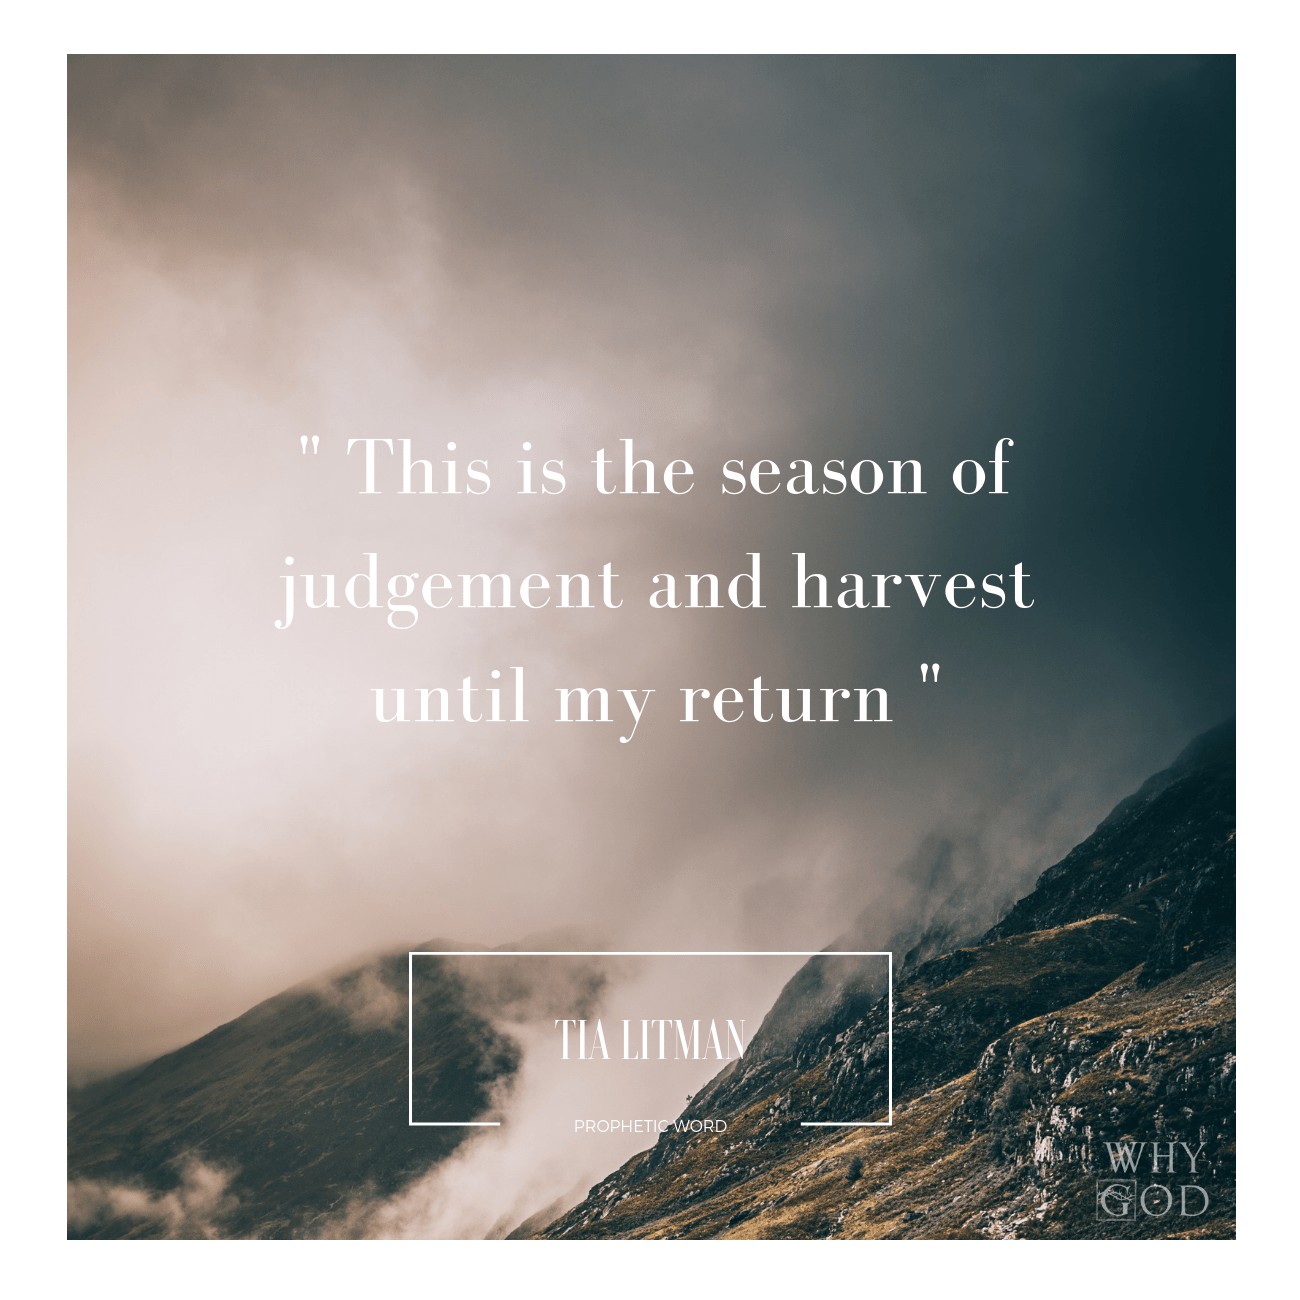 This is the season of judgement and harvest until my return